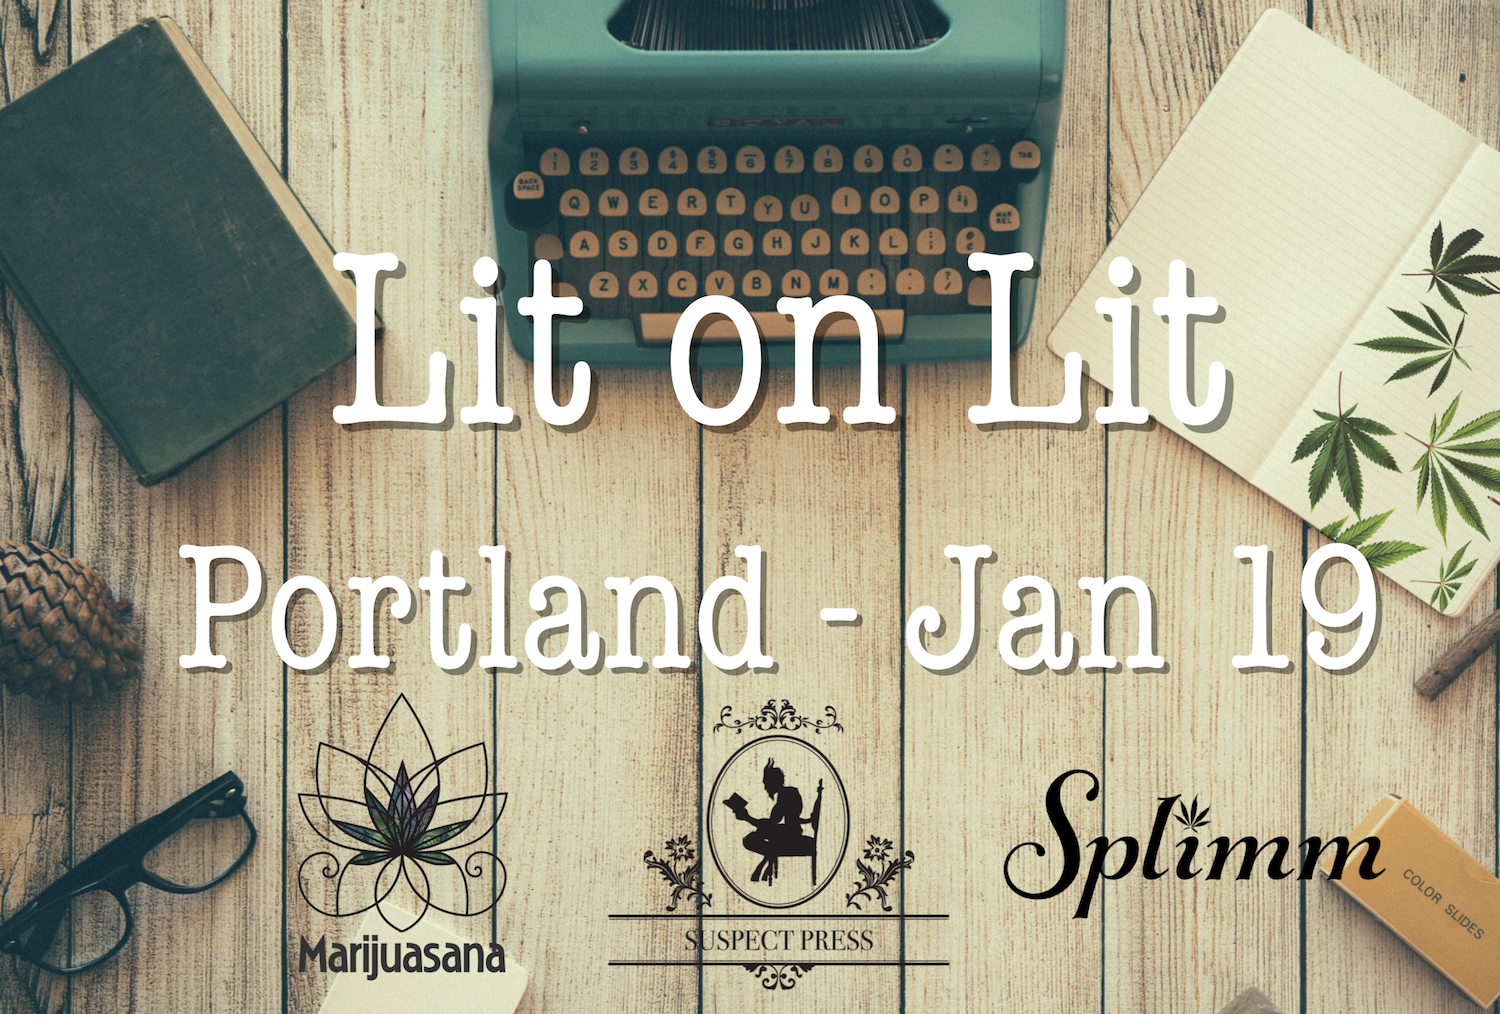 Lit on Lit in Portland - brought to you by Marijuasana